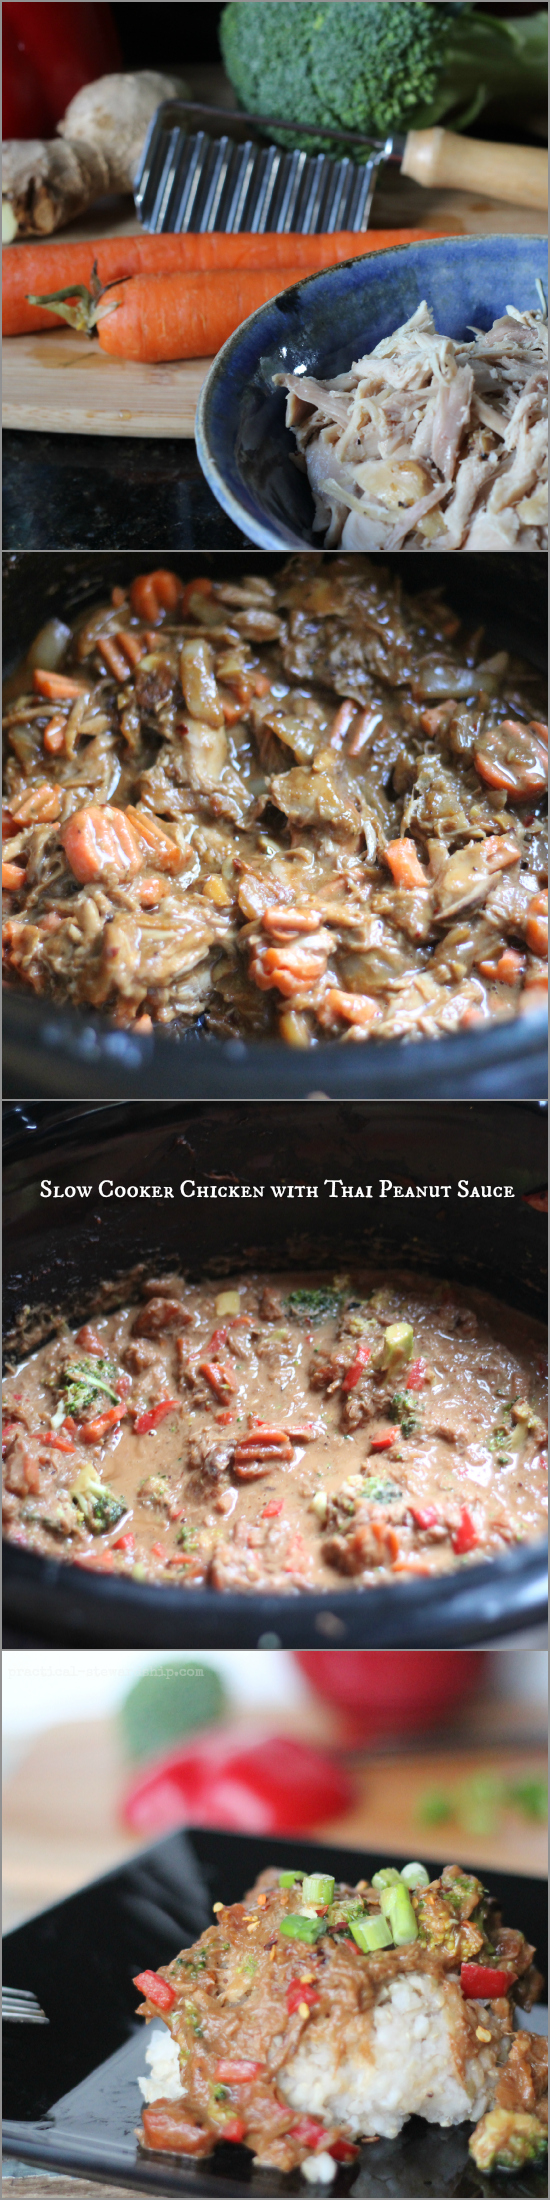 Crock-pot Chicken with Thai Peanut Sauce